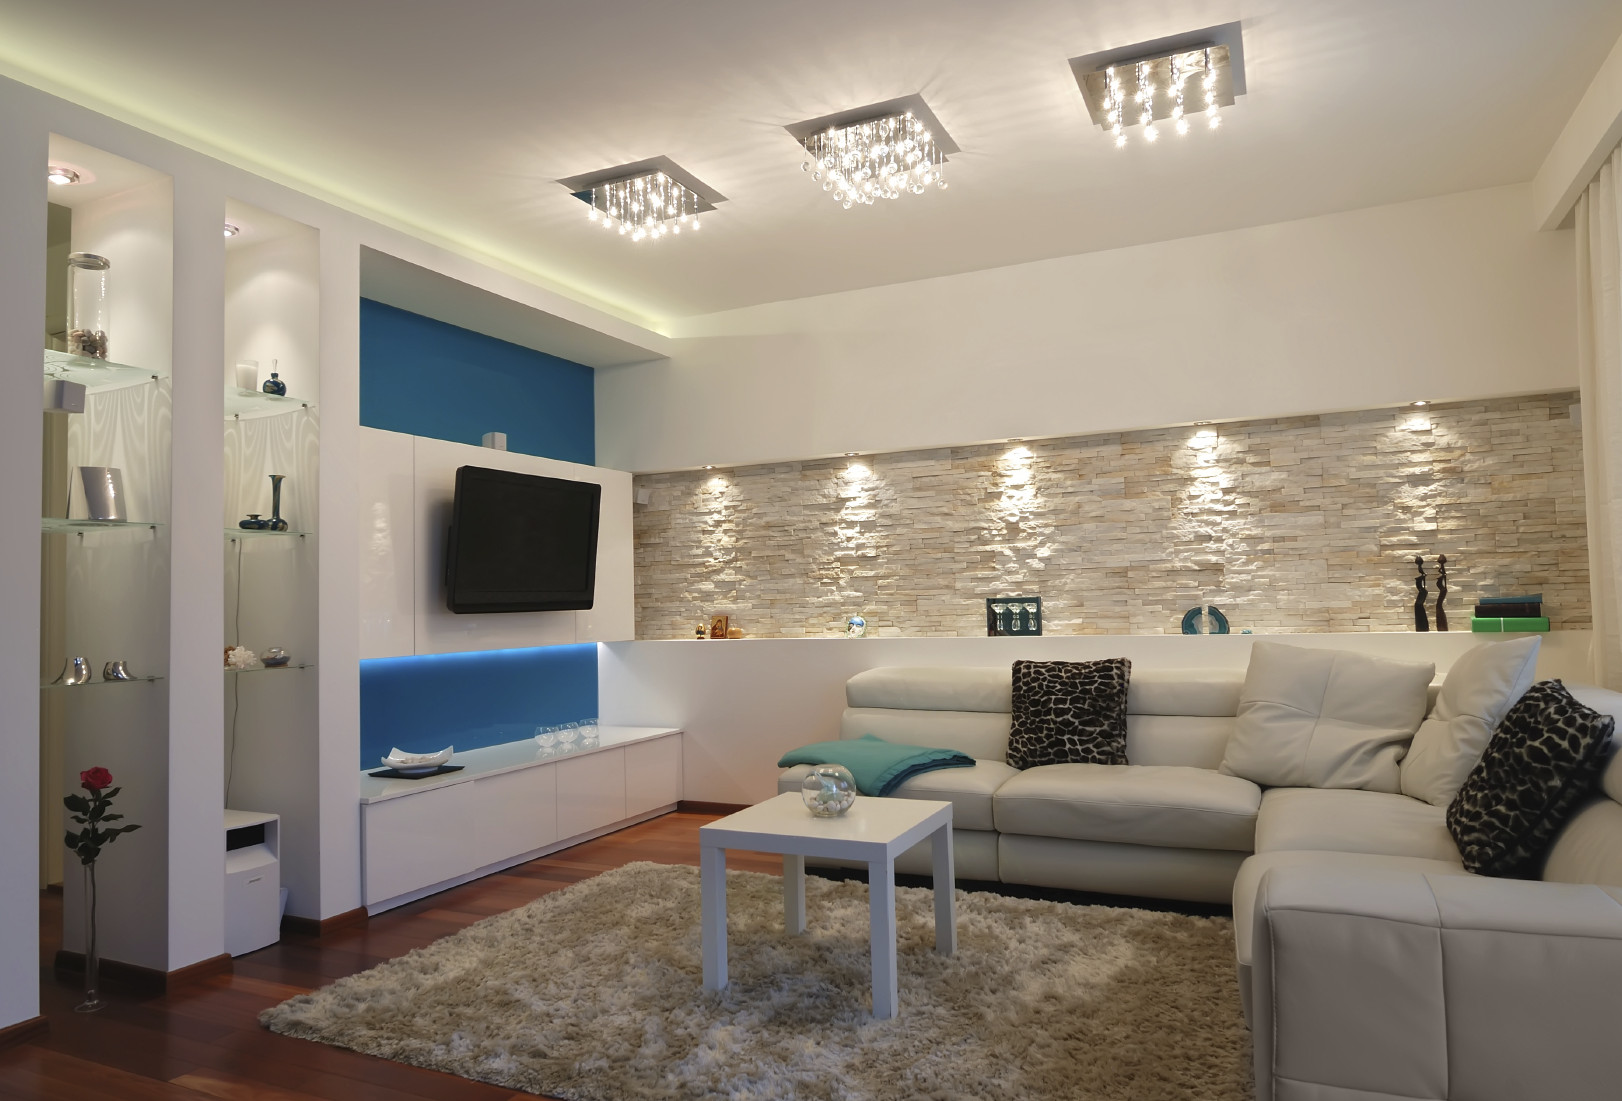 Full Size of Led Beleuchtung Wohnzimmer Ebay Led Beleuchtung Wohnzimmer Ideen Led Beleuchtung Wohnzimmer Tipps Led Beleuchtung Für Wohnzimmer Wohnzimmer Led Beleuchtung Wohnzimmer